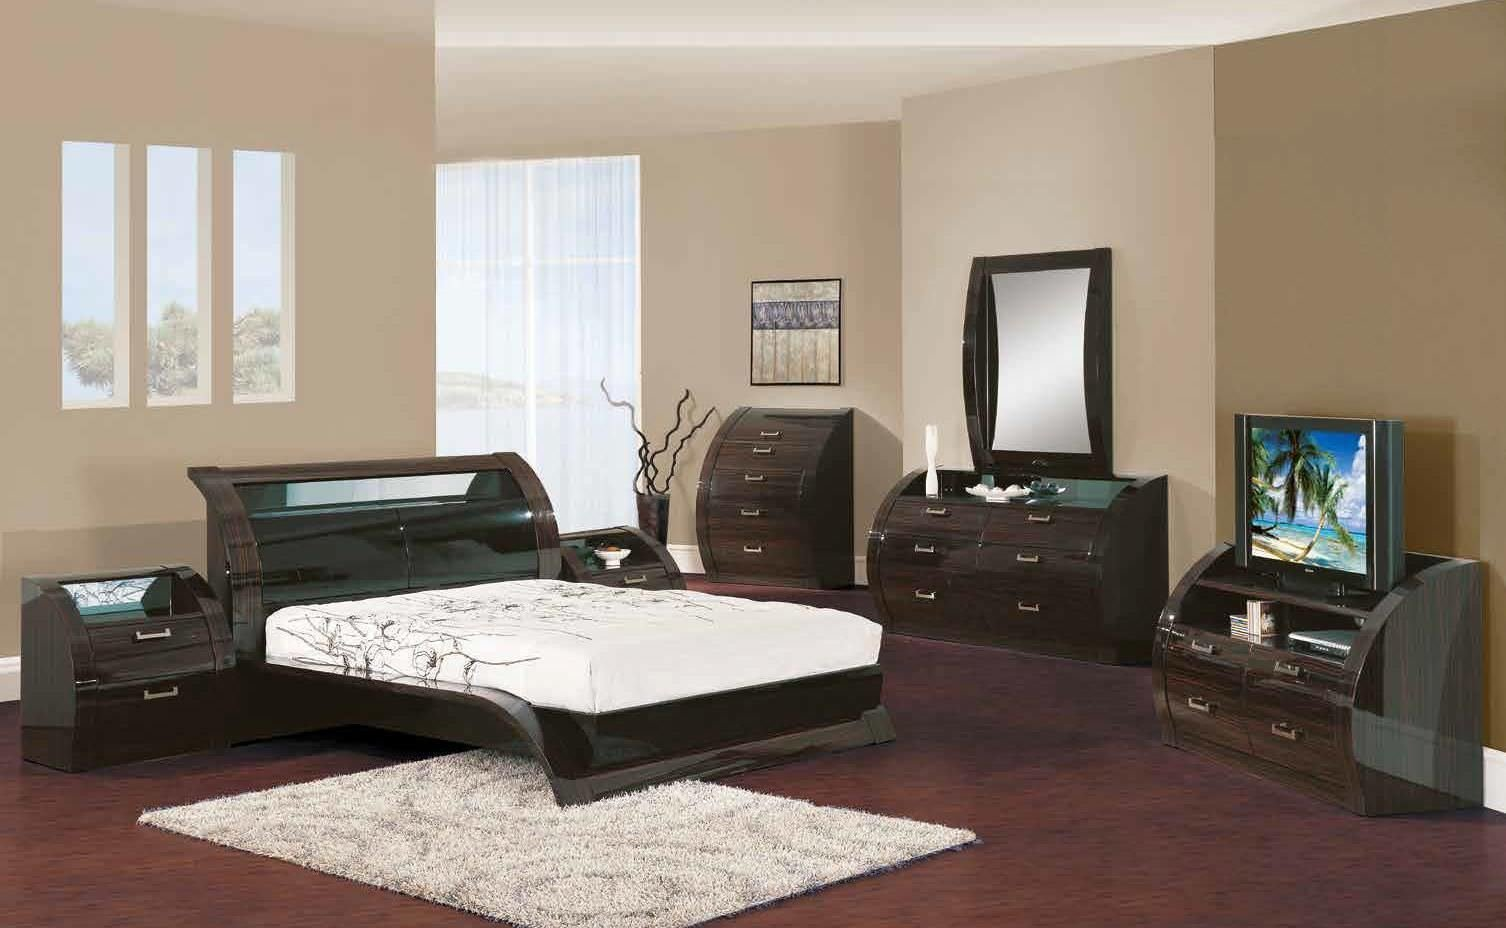 Best Modern Bedroom Sets Under 1000 Decor Studios Beautiful Contemporary King Bedroom Sets With Pictures